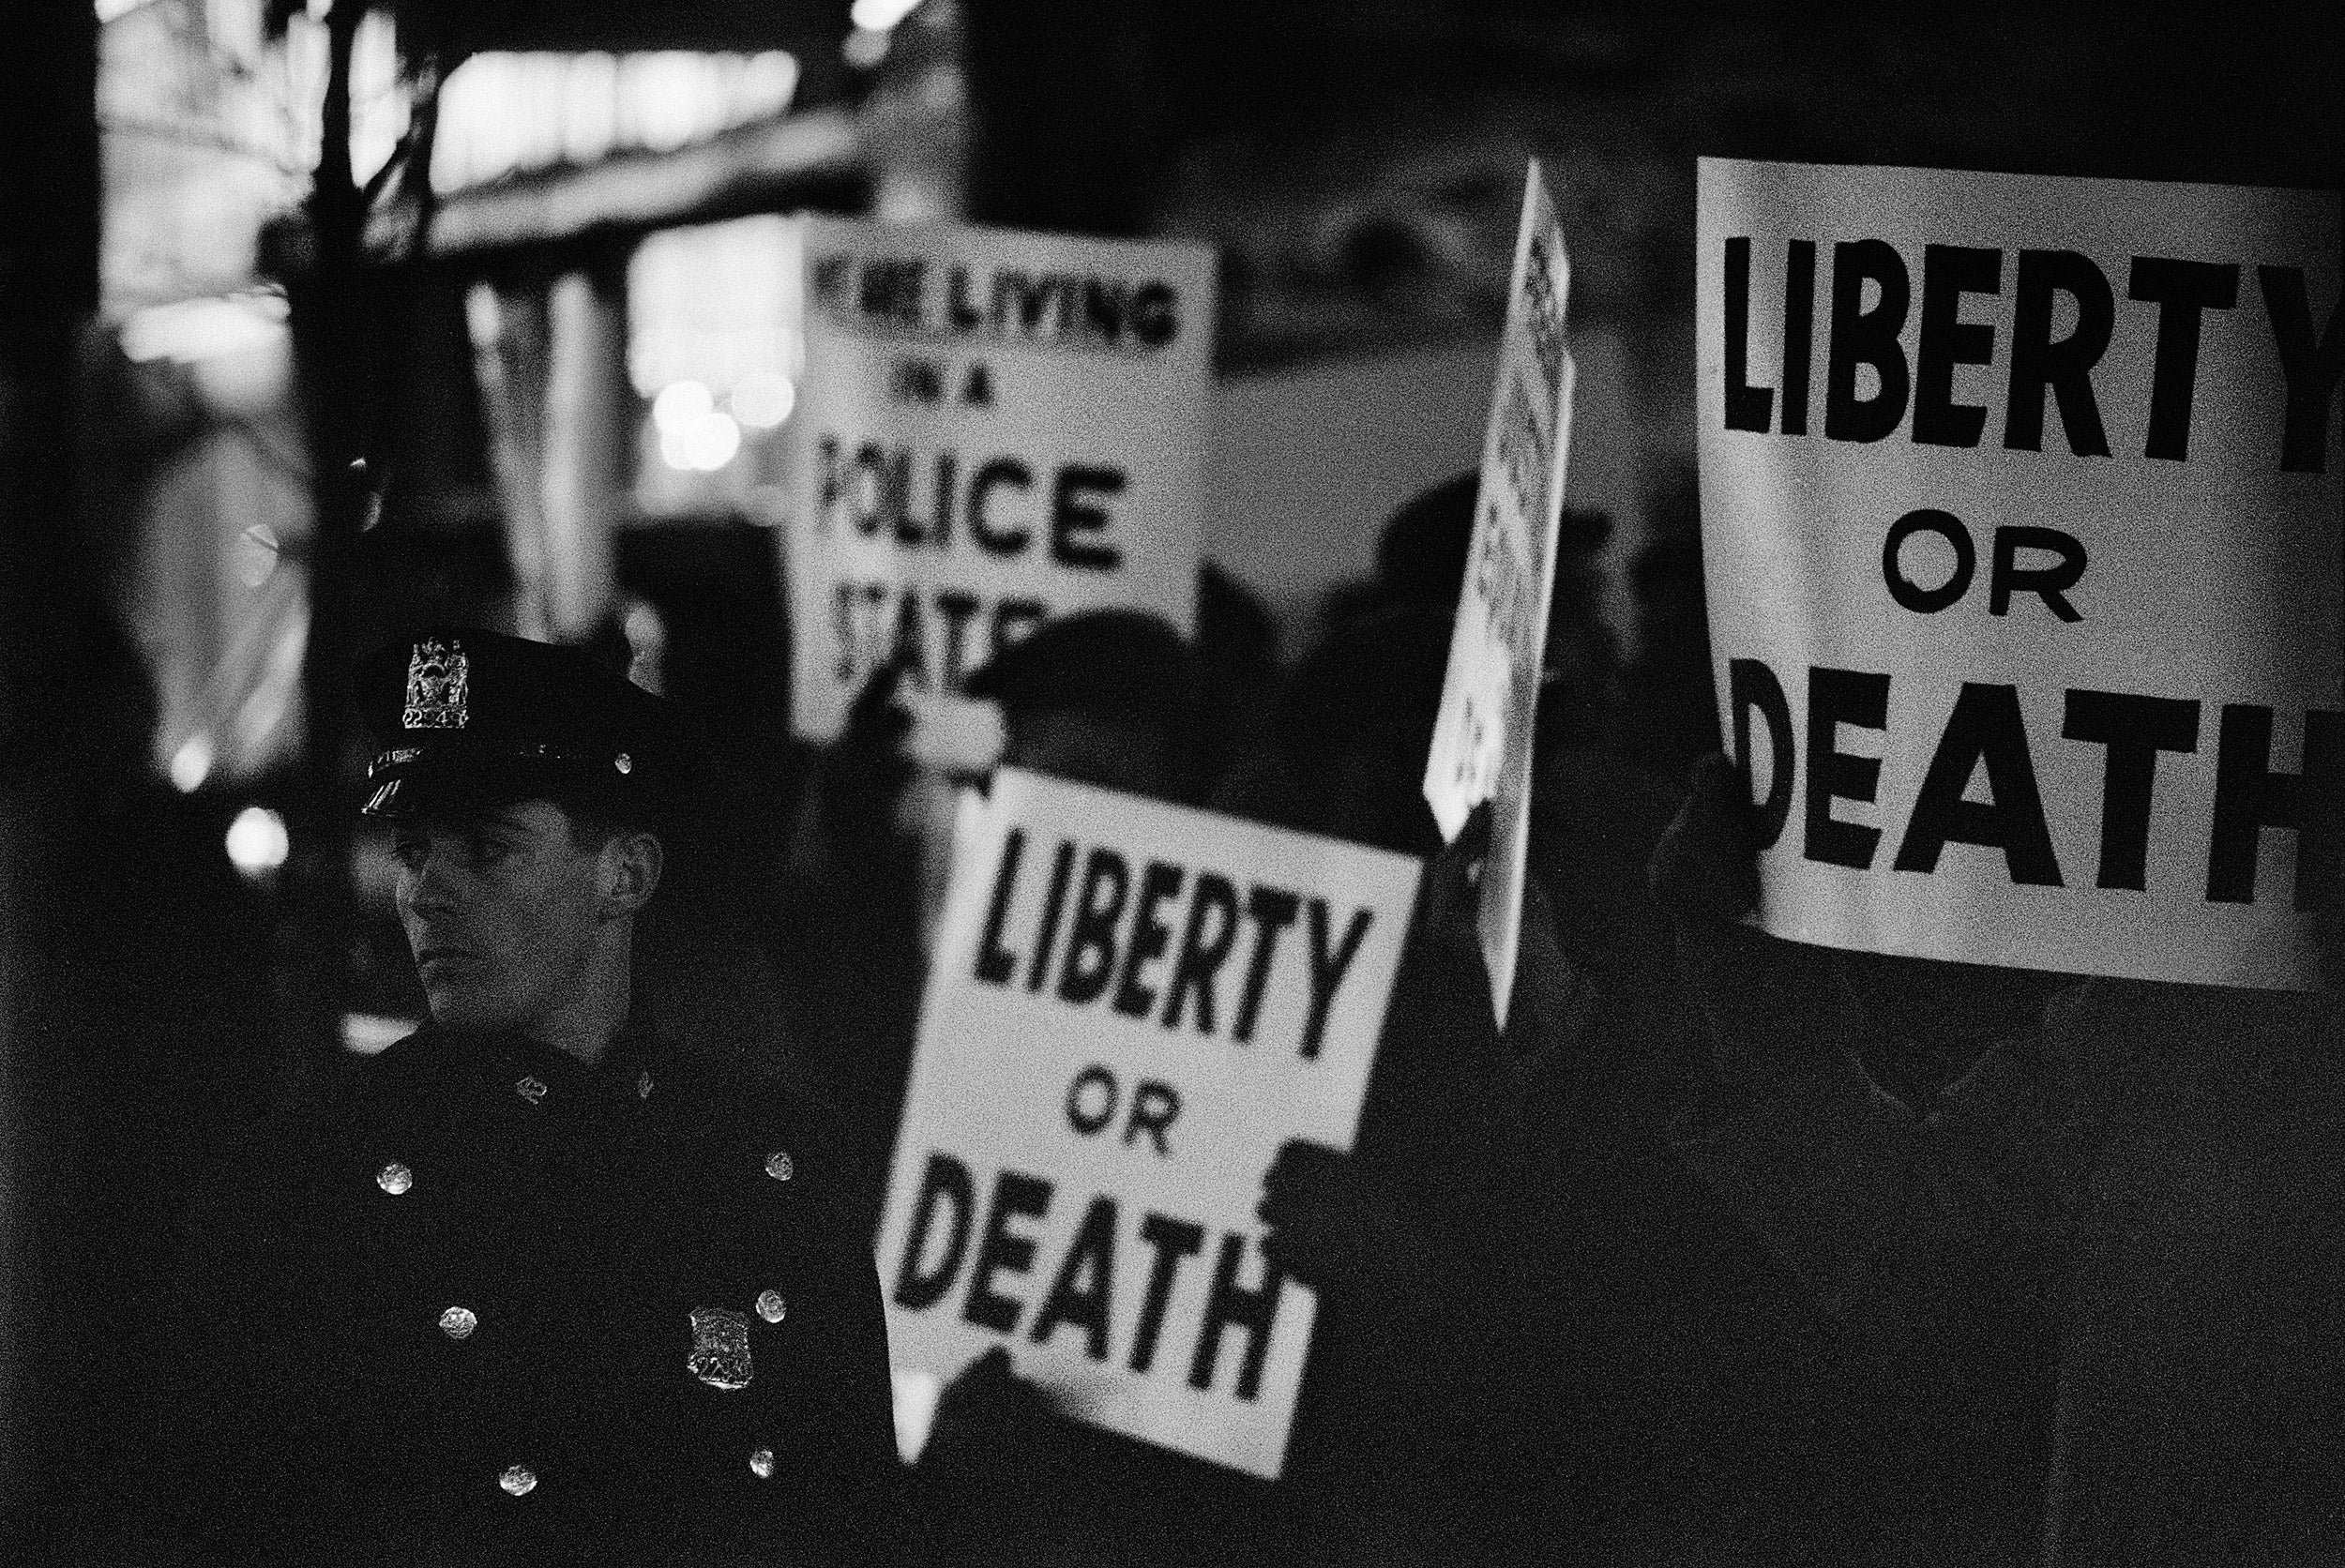 """Liberty or death"" on posters in the background, a police officer in the foreground"